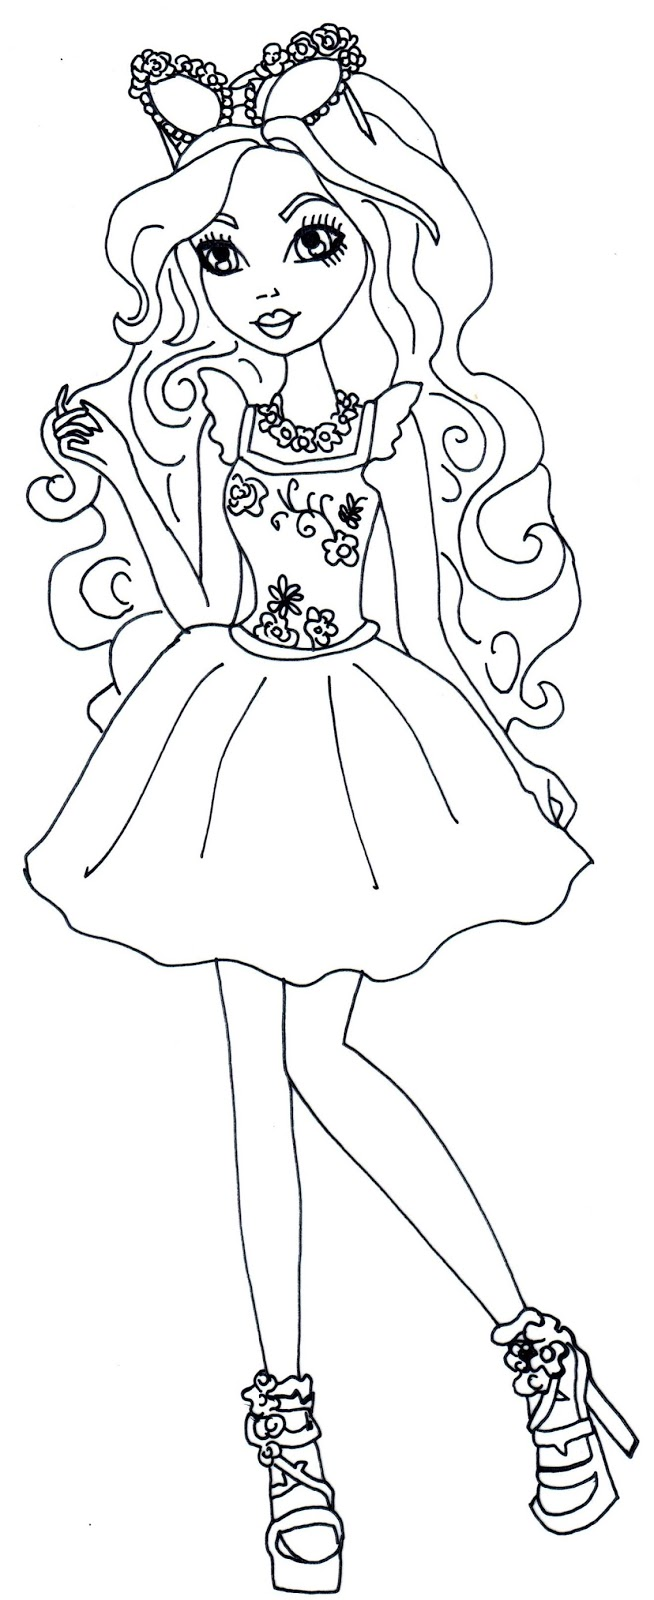 Ashlynn Ella Mirror Beach Ever After High Coloring Page